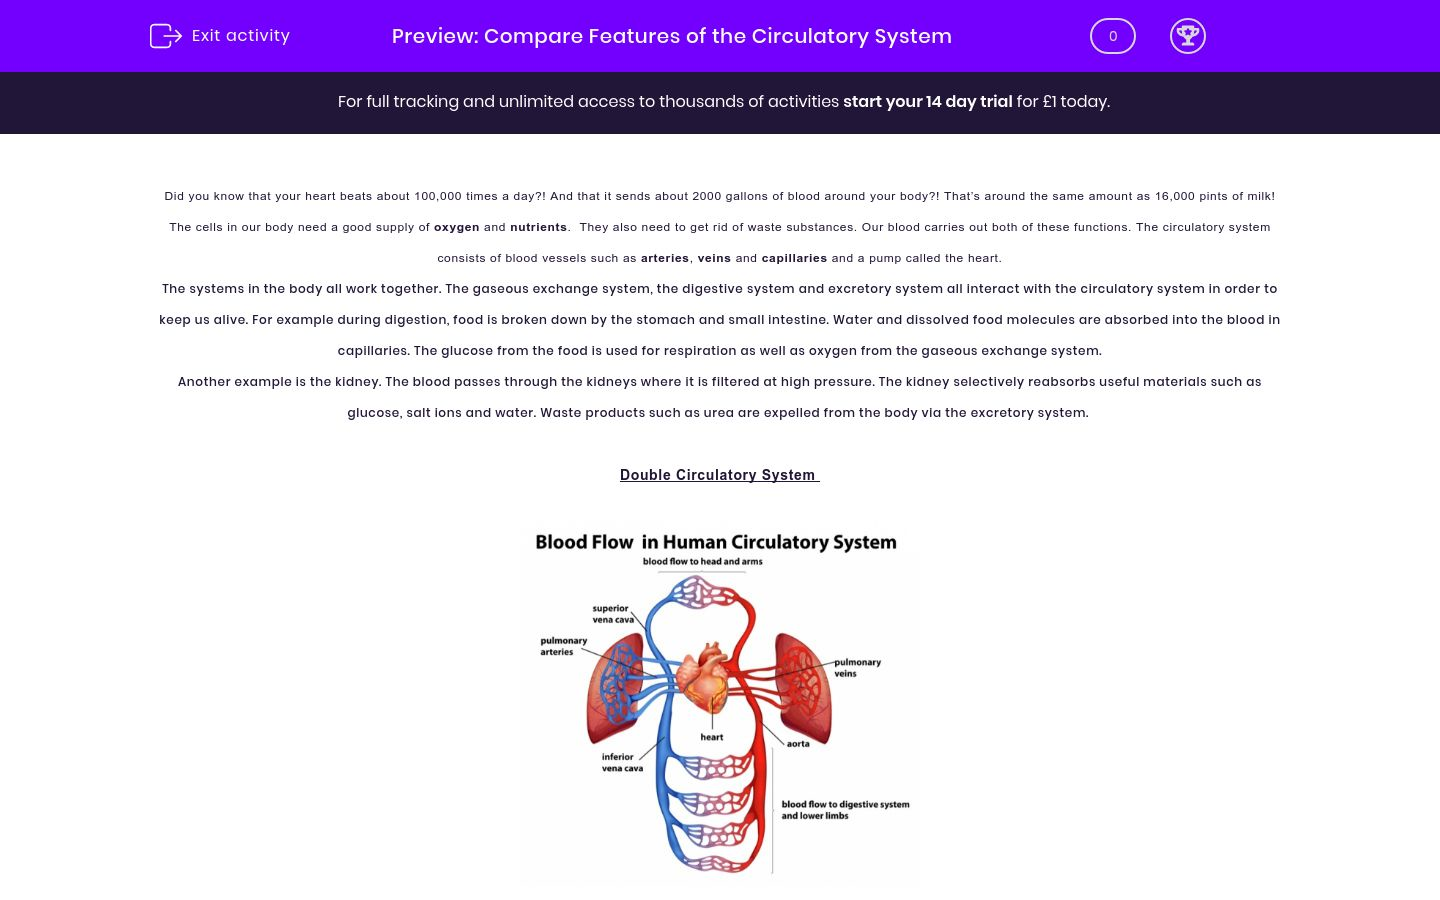 'Investigate the Features of the Circulatory System' worksheet